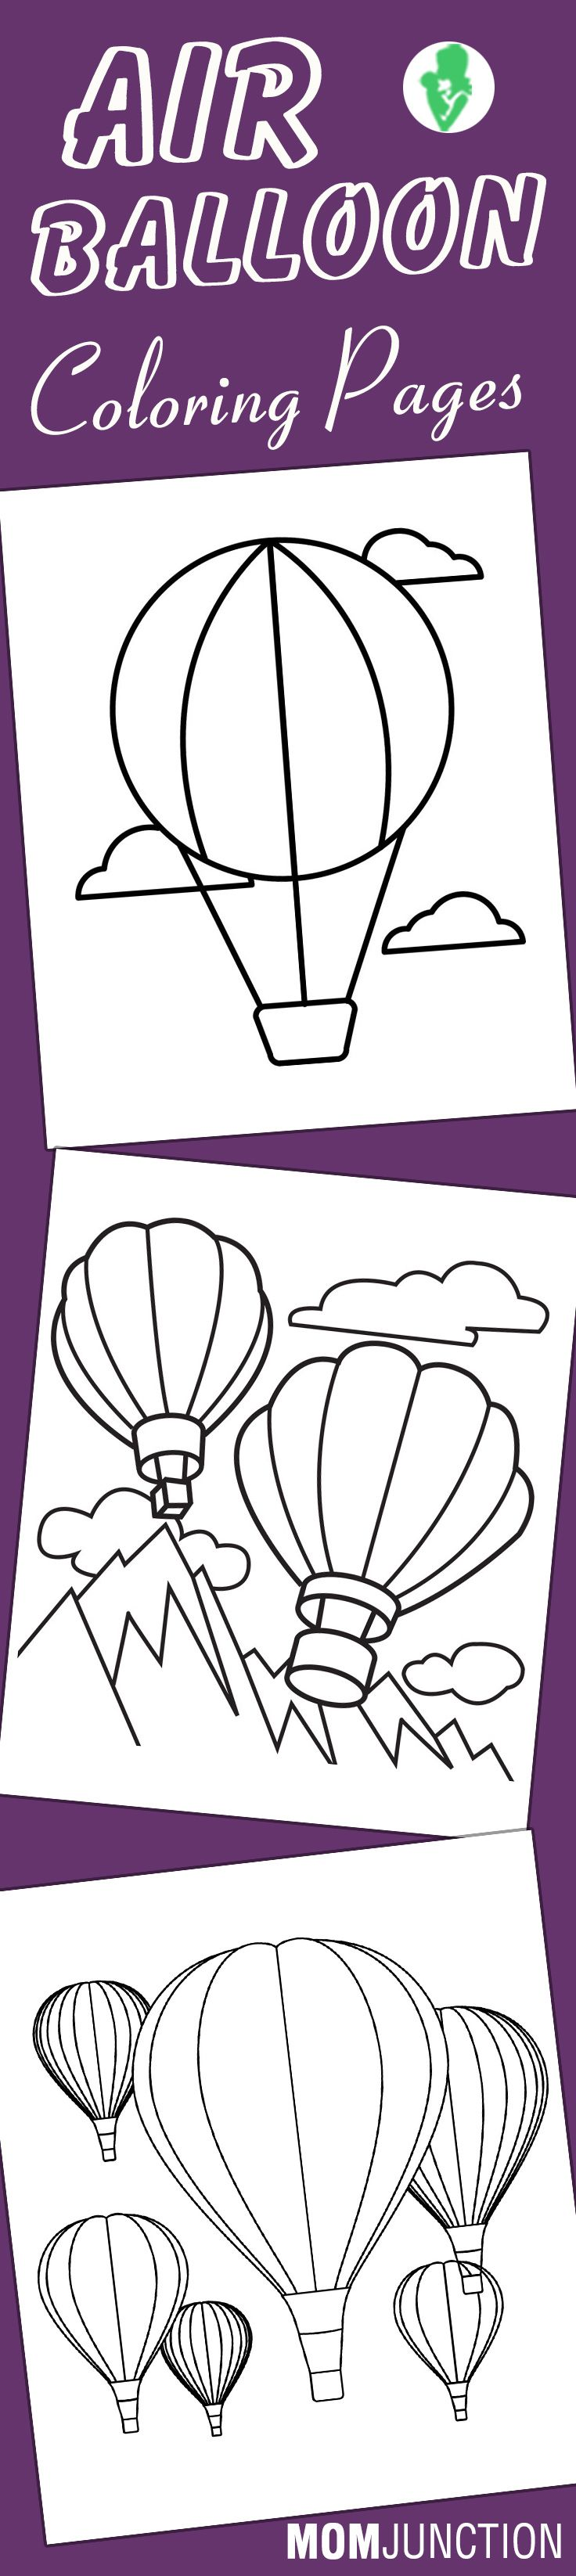 Printable coloring pages hot air balloons - Hot Air Balloon Coloring Pages Free Printables